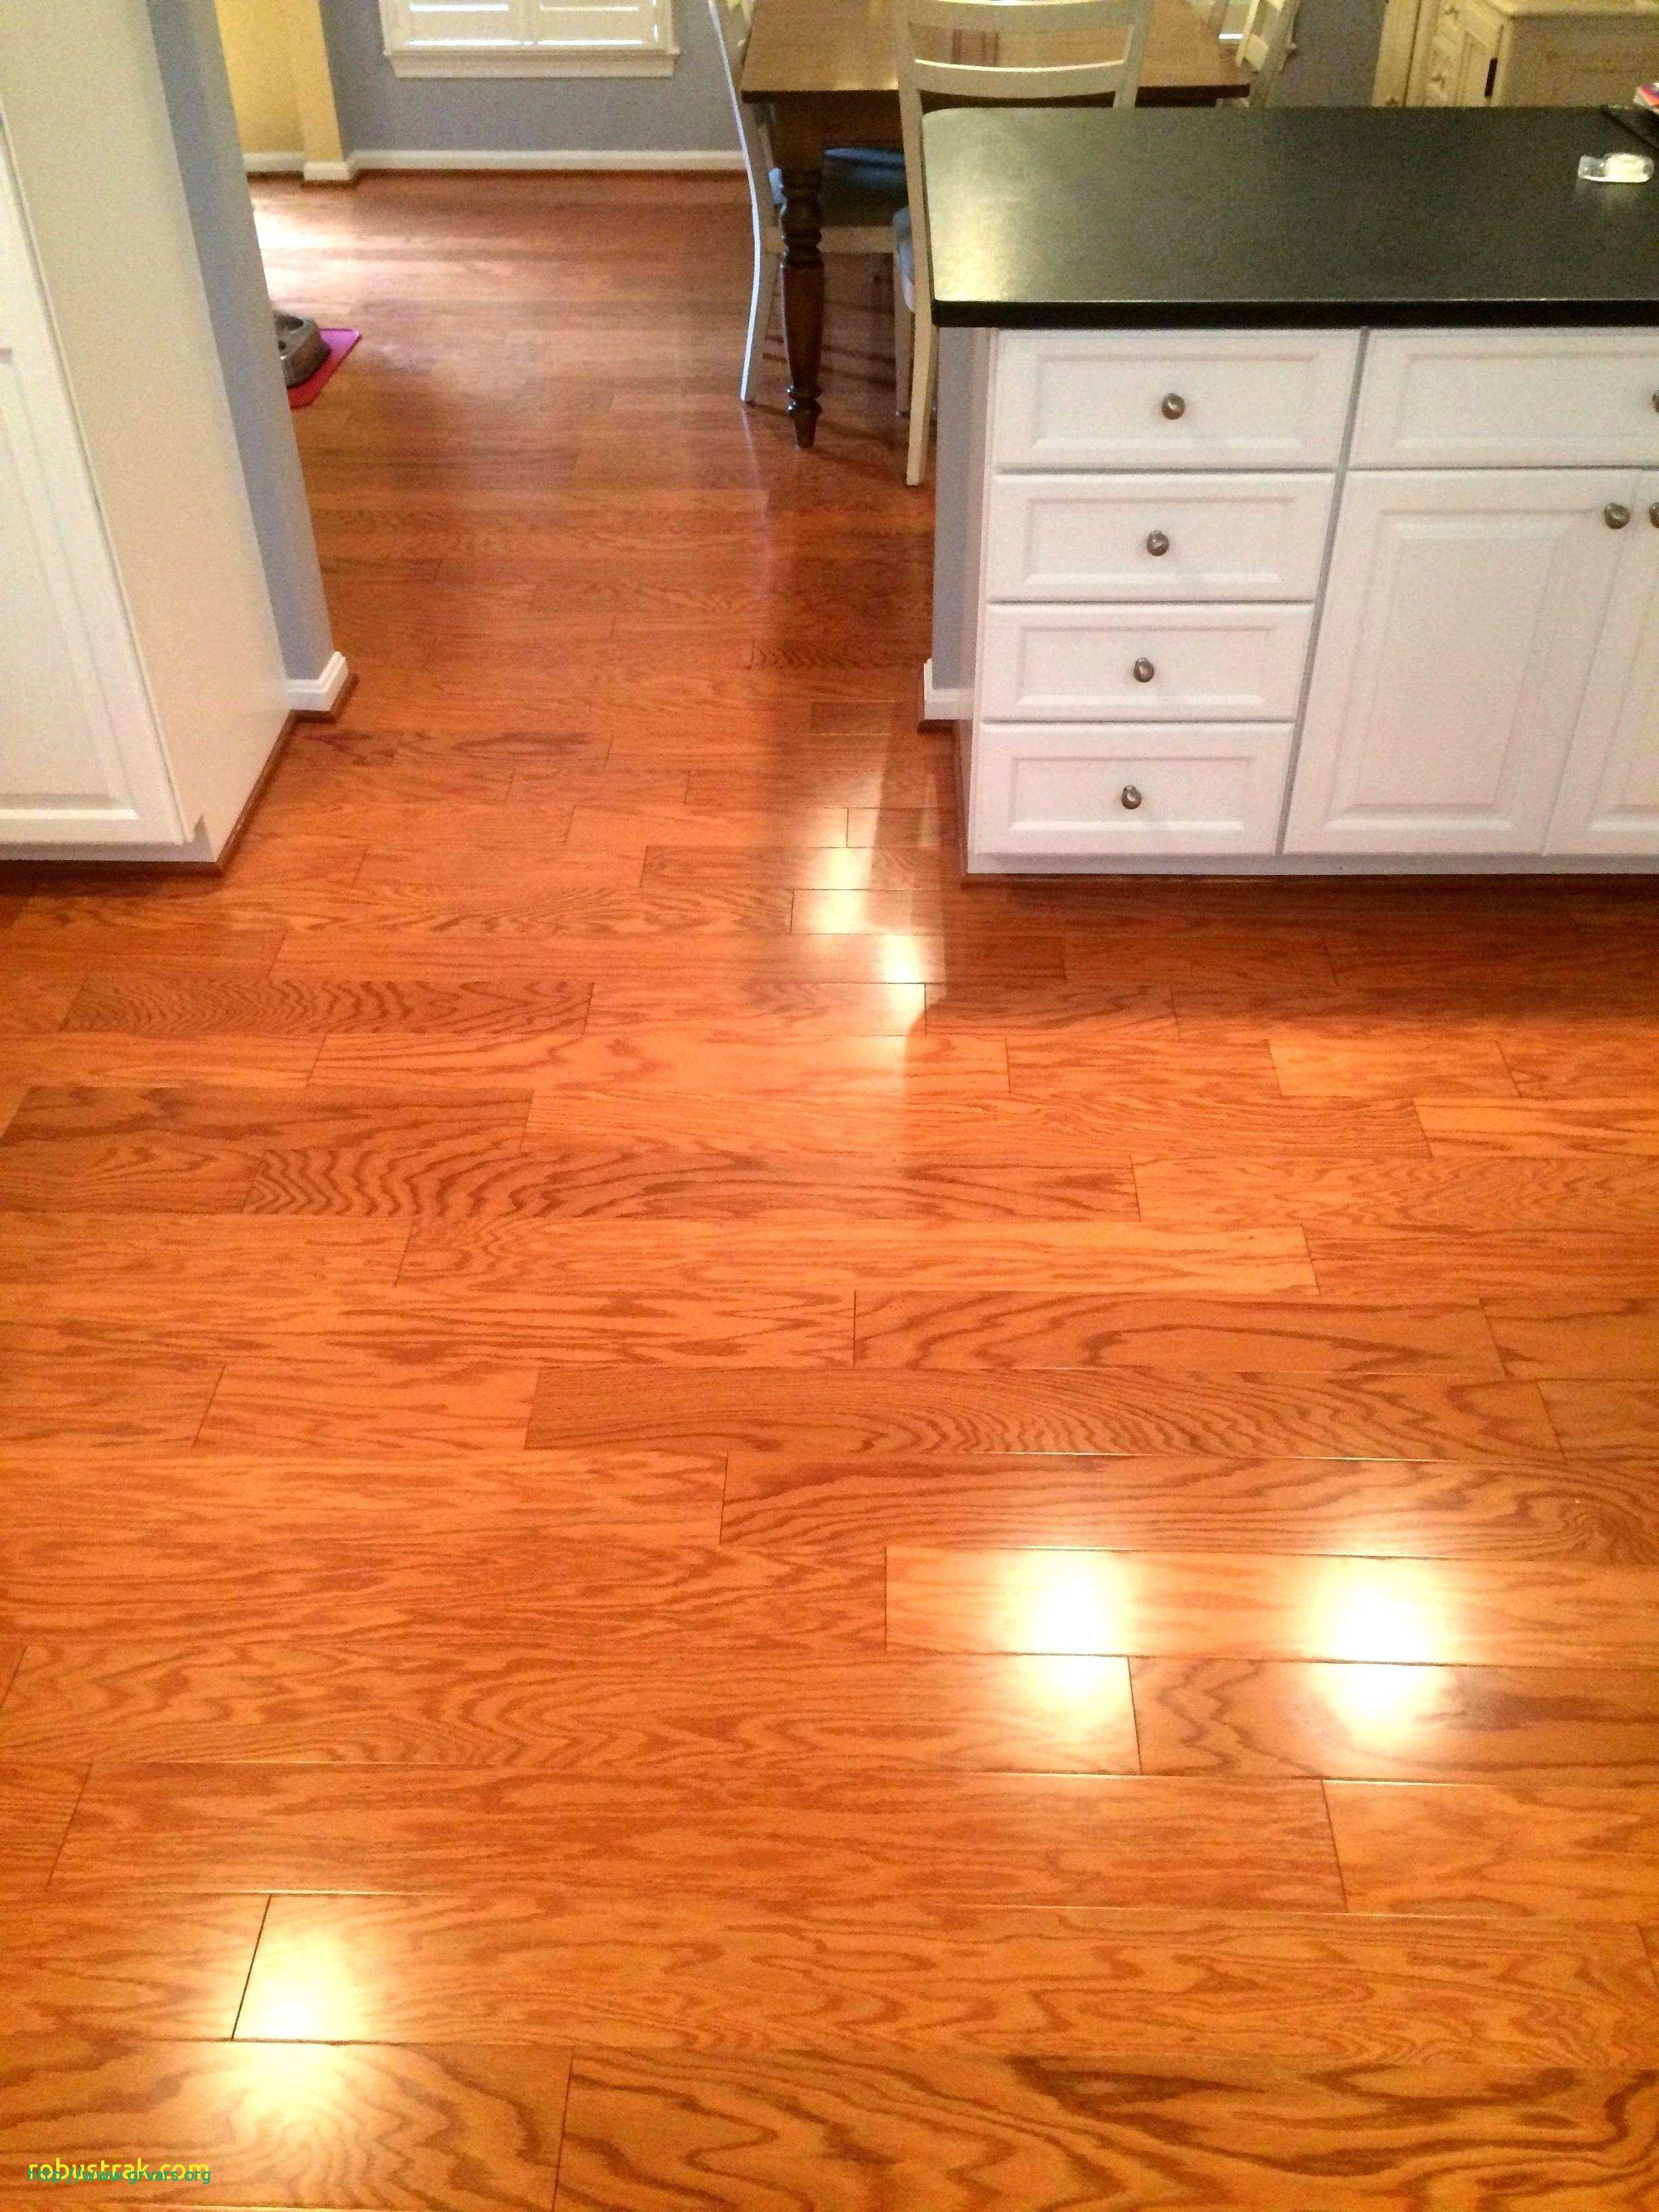 Hickory Hardwood Flooring Prices Of 25 Beau fore Wood Floors Ideas Blog with Hardwood Floors In the Kitchen Fresh where to Buy Hardwood Flooring Inspirational 0d Grace Place Barnegat